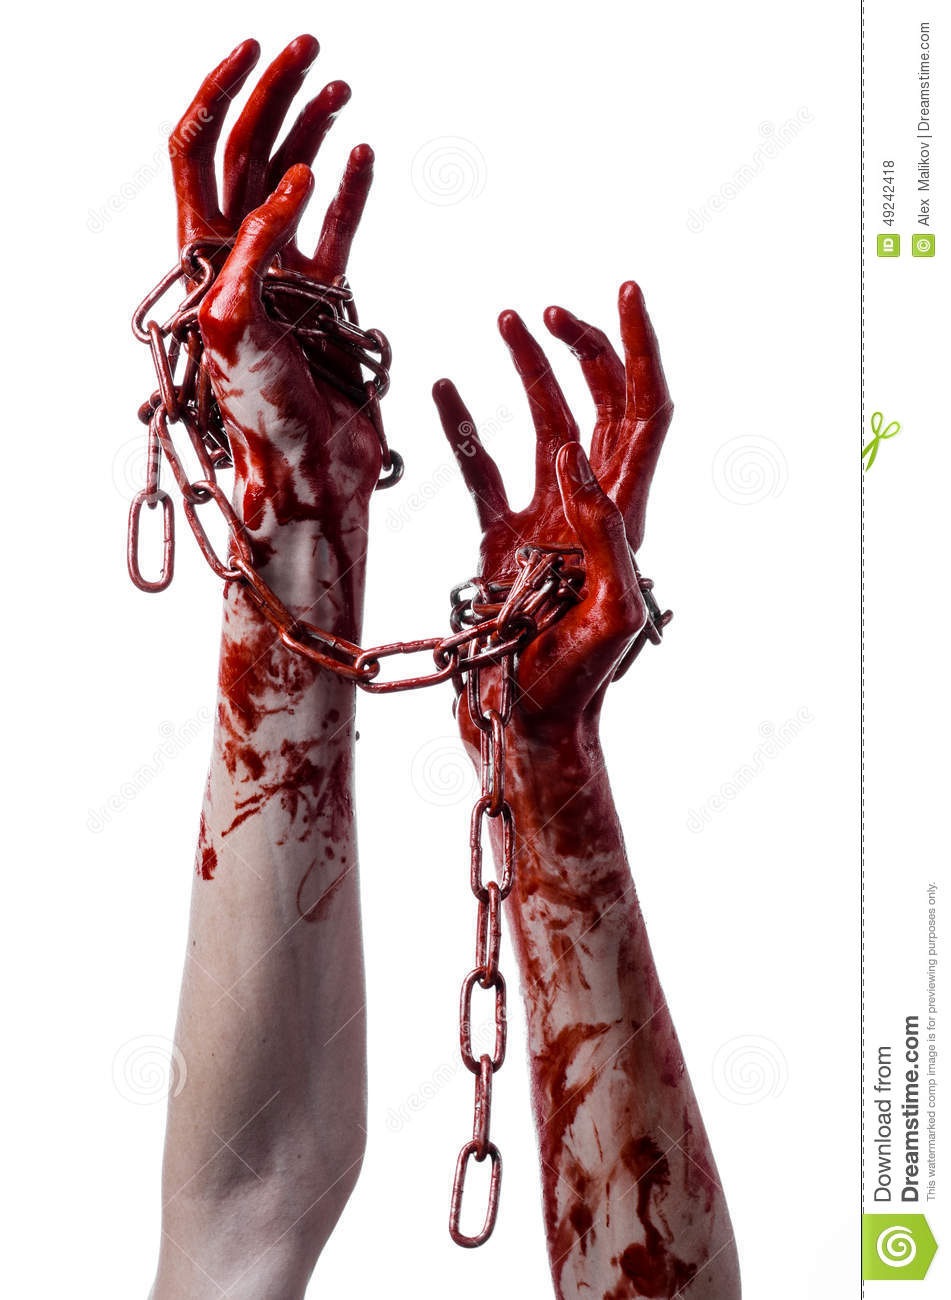 bloody hand holding - photo #11